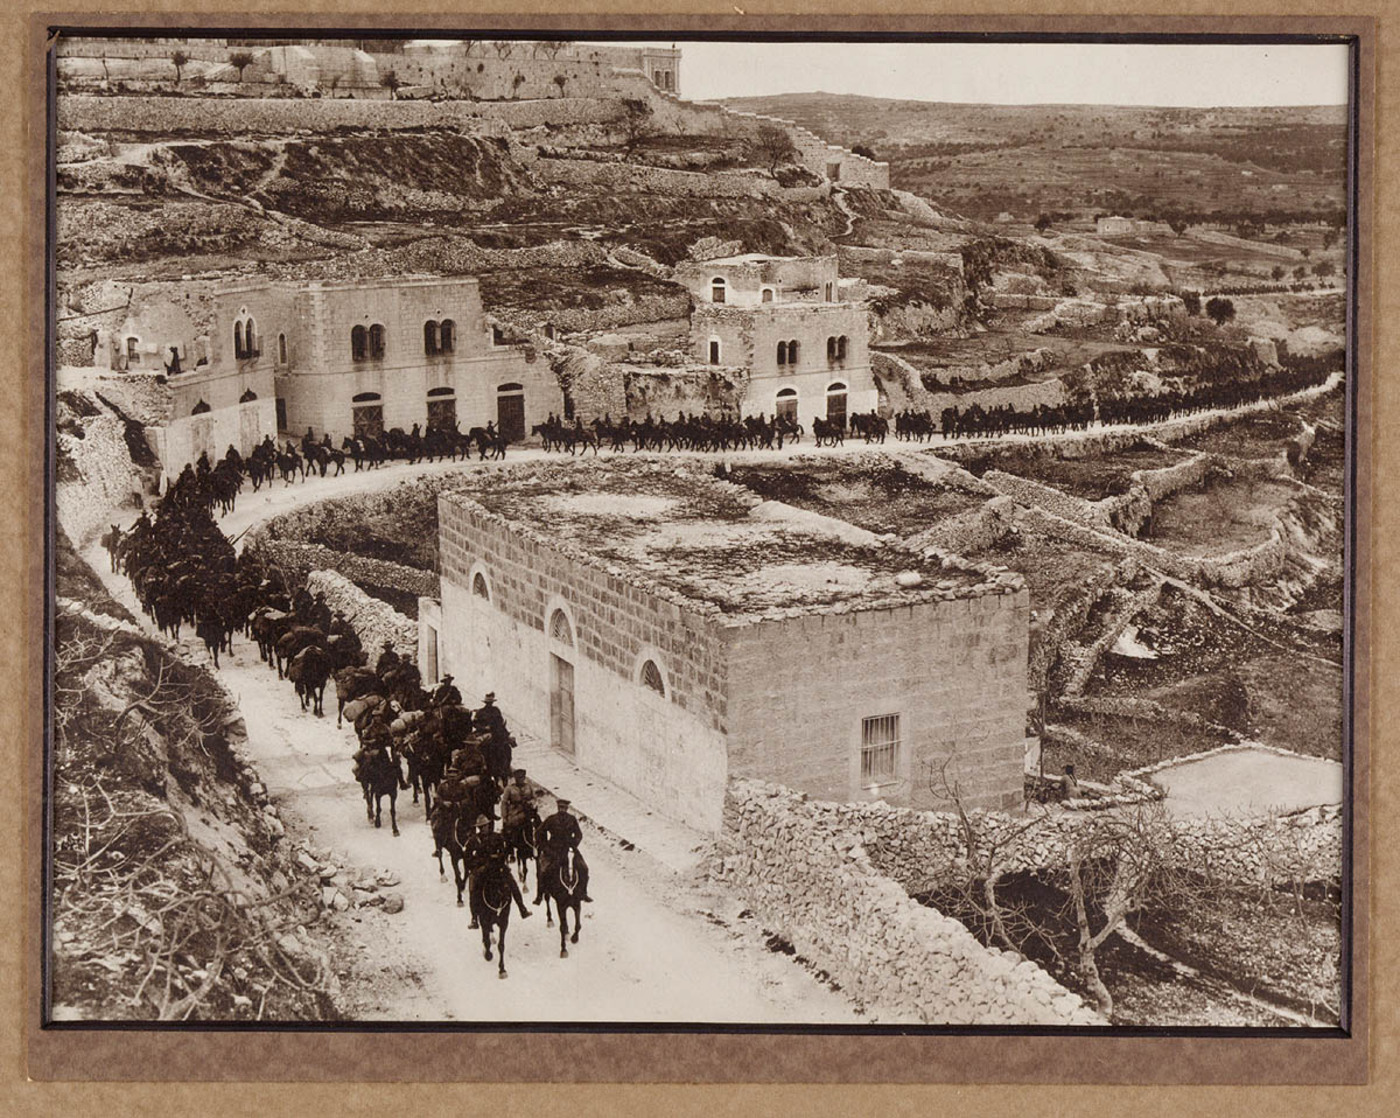 The 1st Brigade Australin Light Horse passing through Bethlehem on their way to Jericho